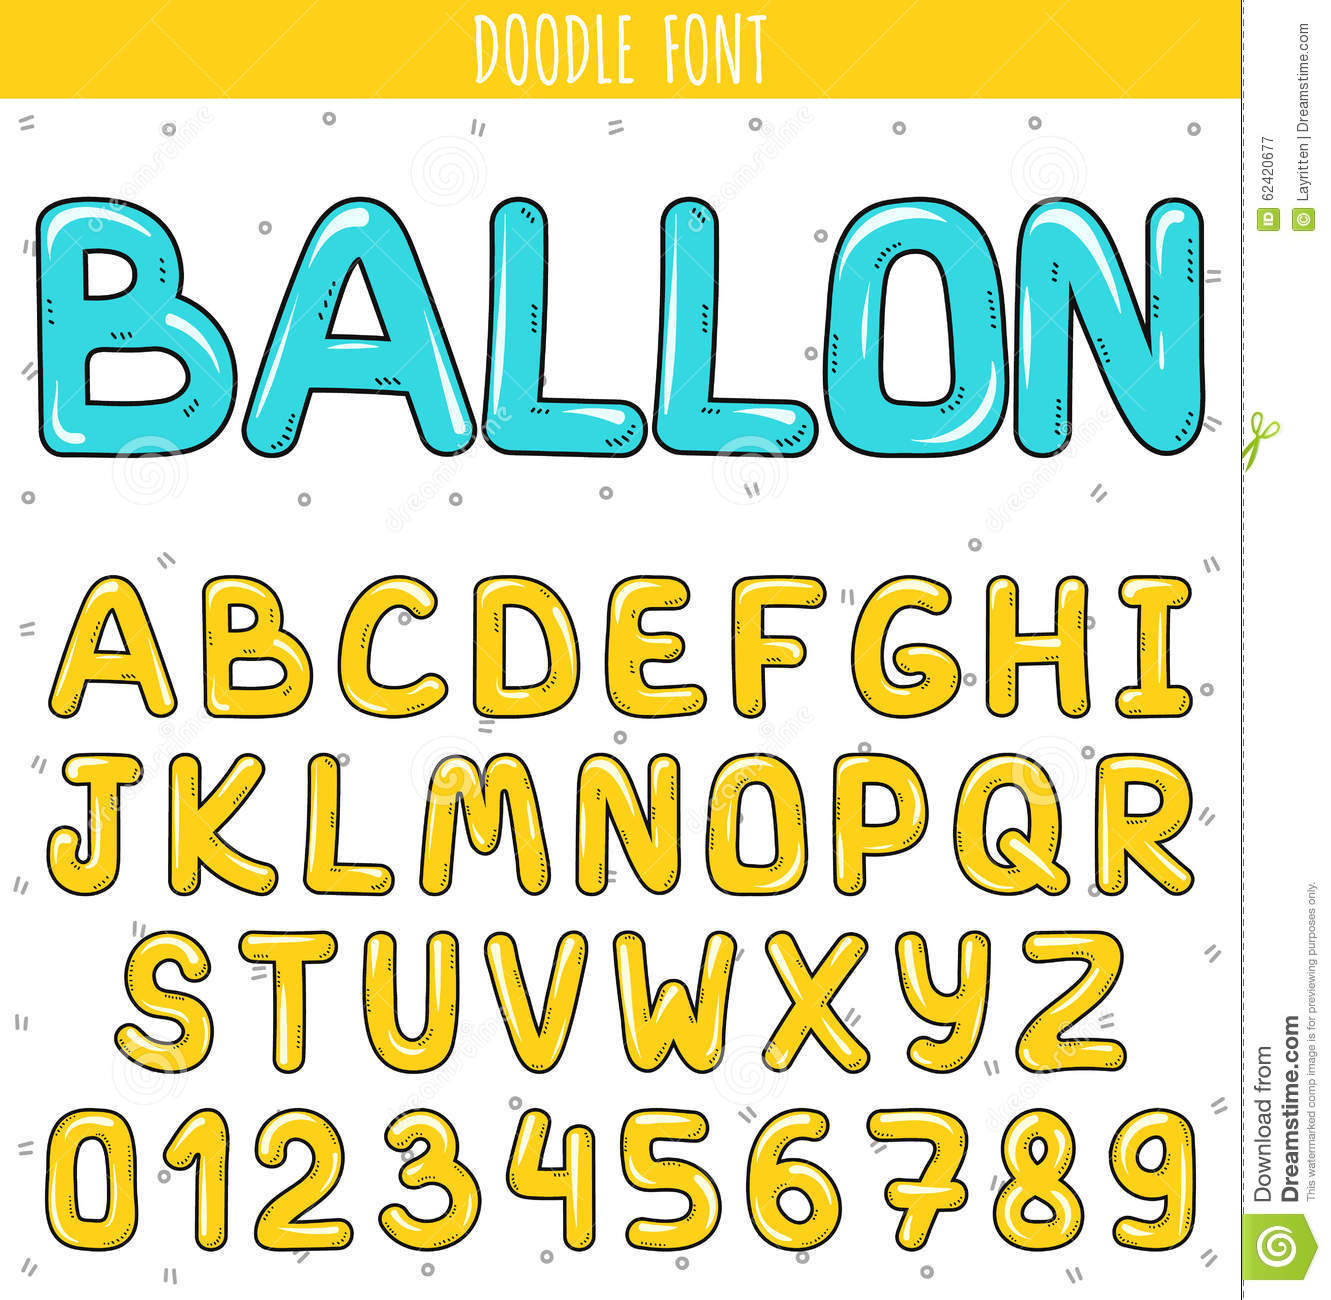 Font ballon. Set volume letters, numbers in doodle. Letters handdrawn